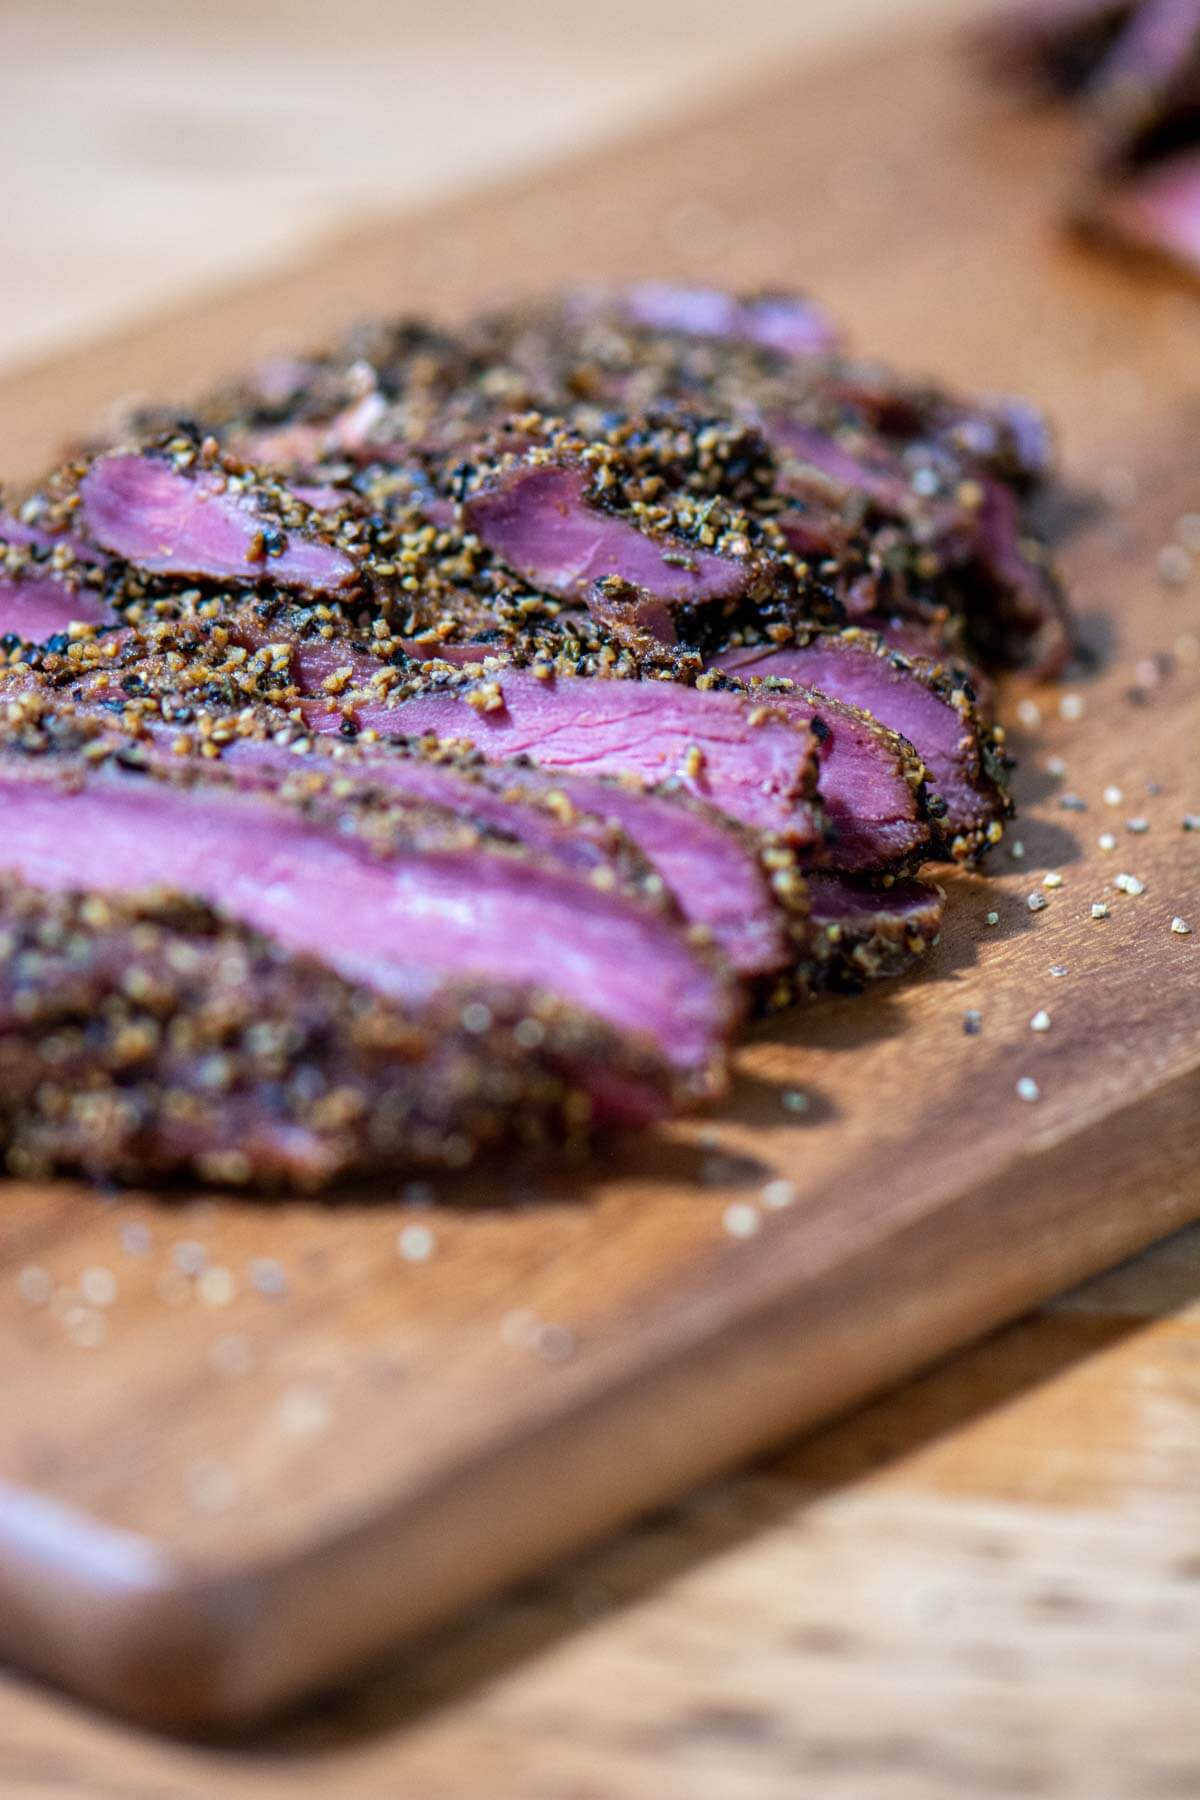 slices of goose breast on a cutting board coasted in the pastrami seasoning.